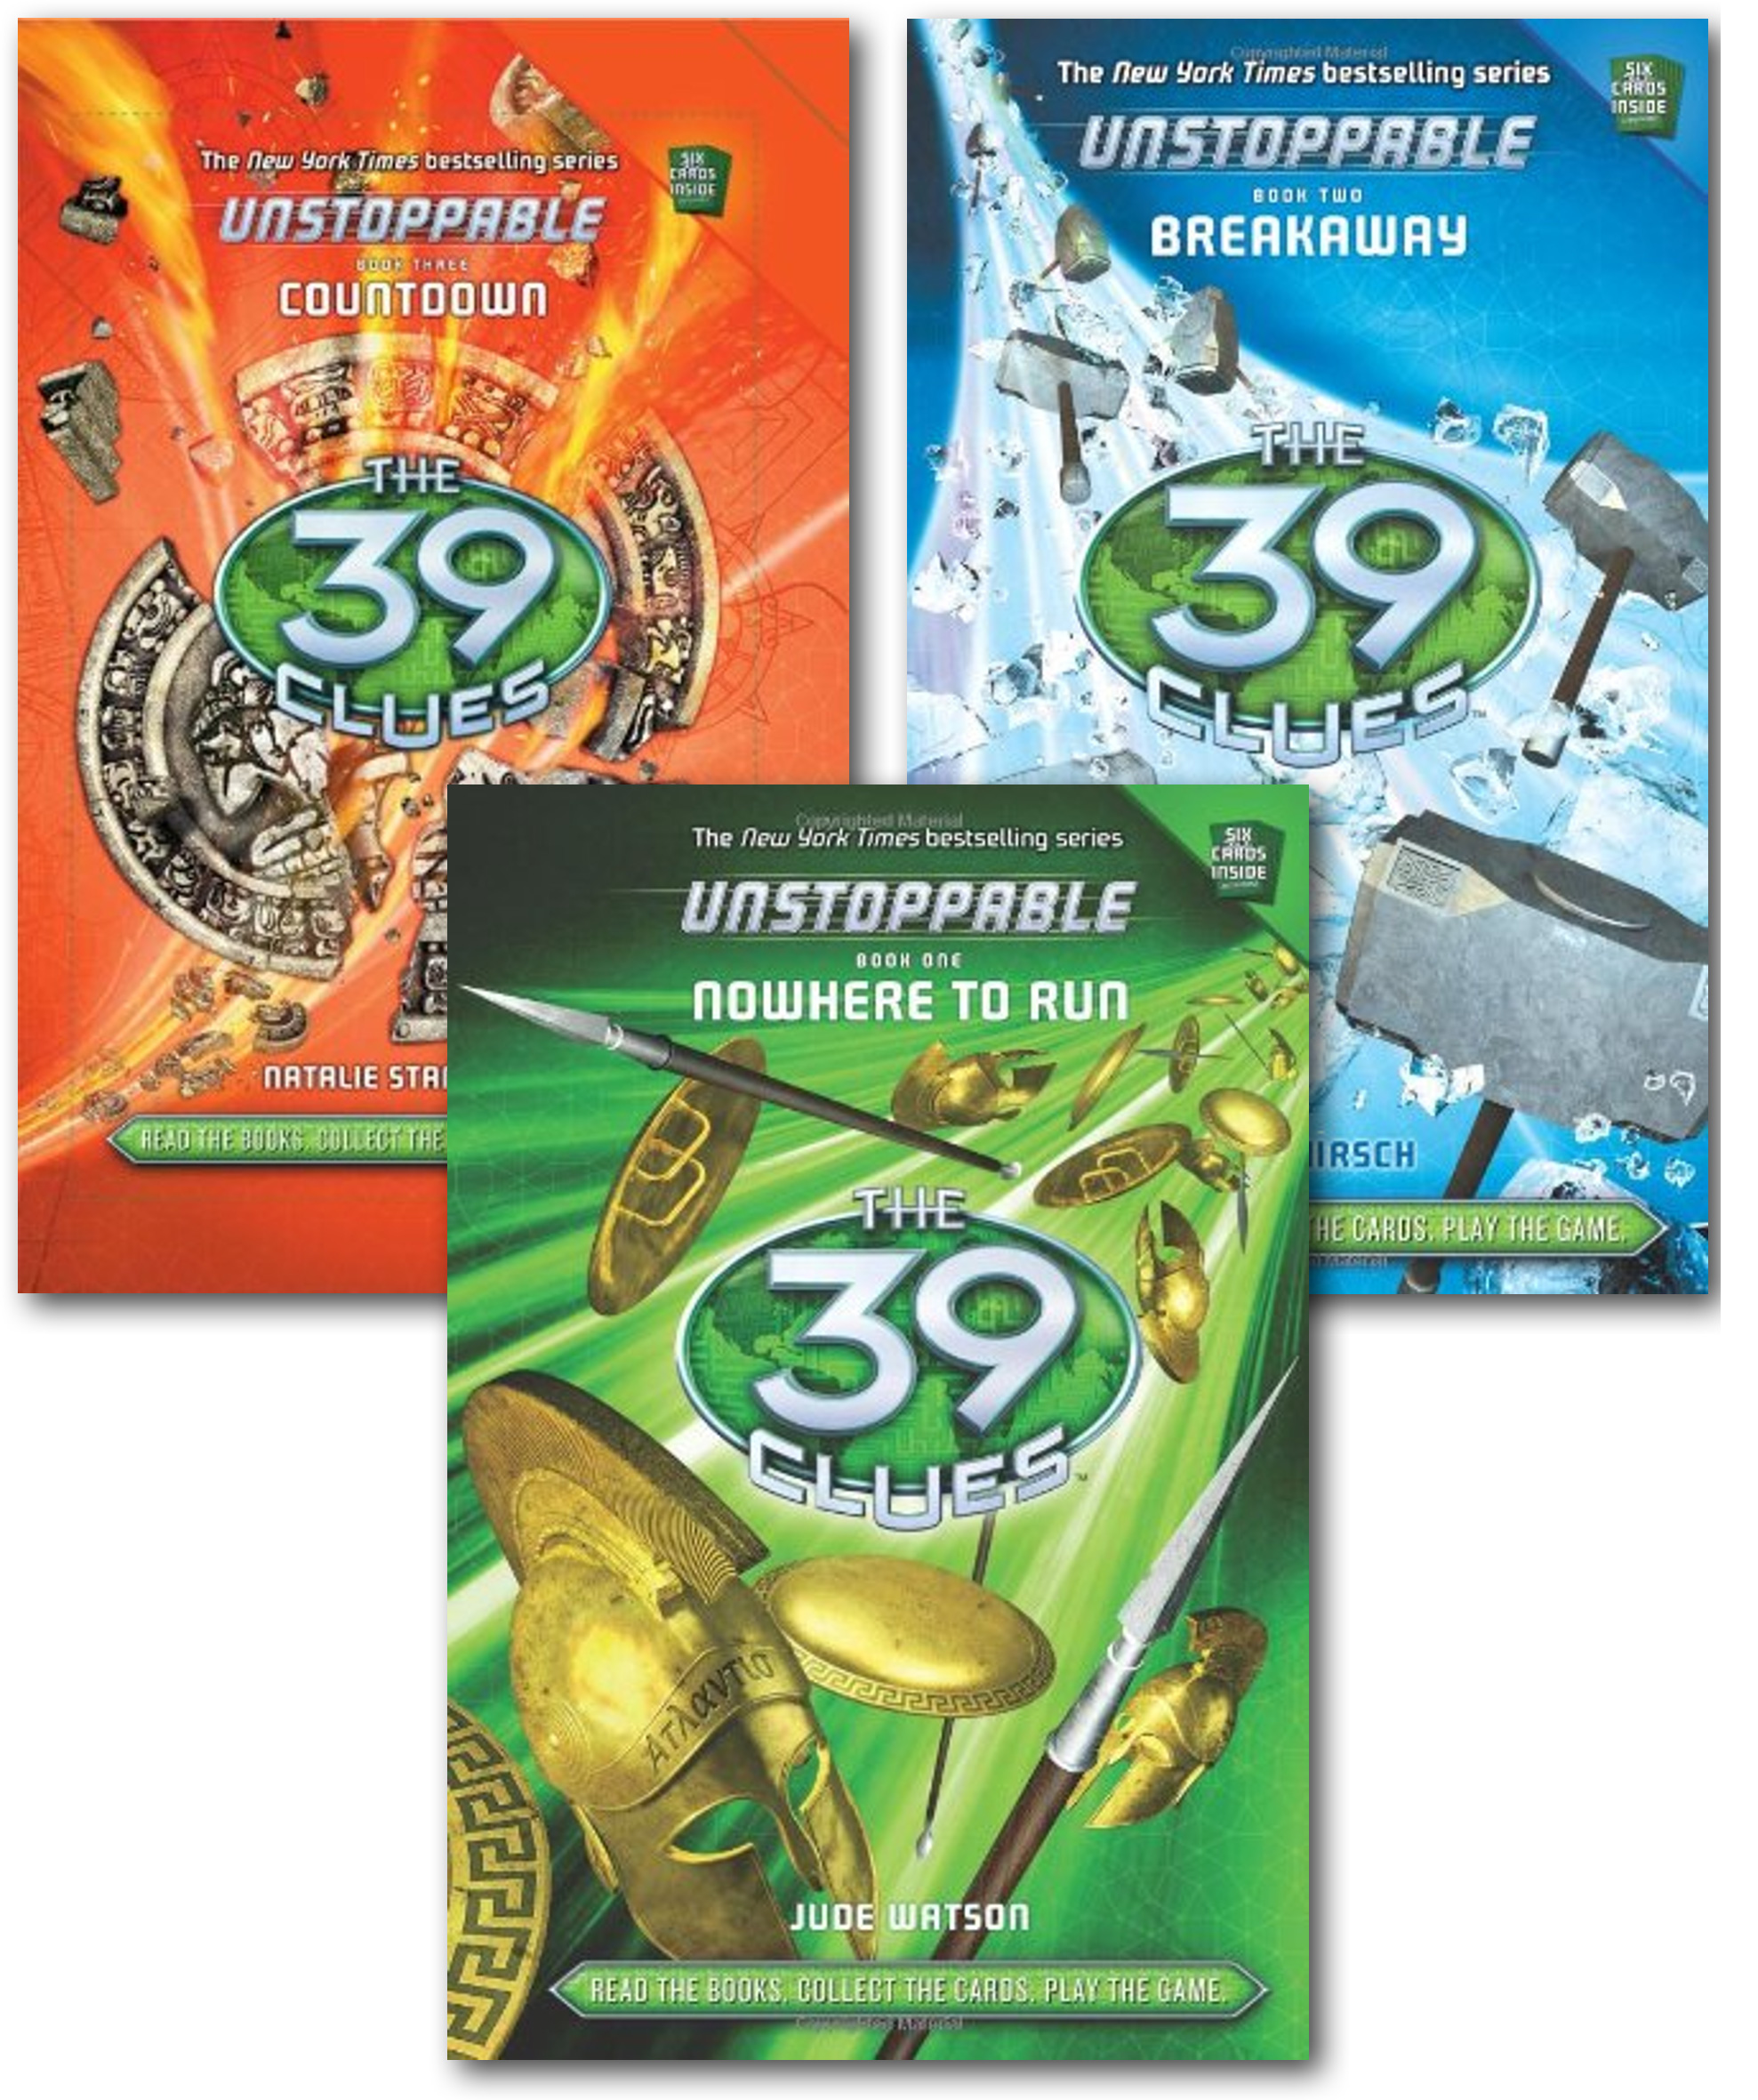 The 39 Clues: Unstoppable Series by Jude Watson